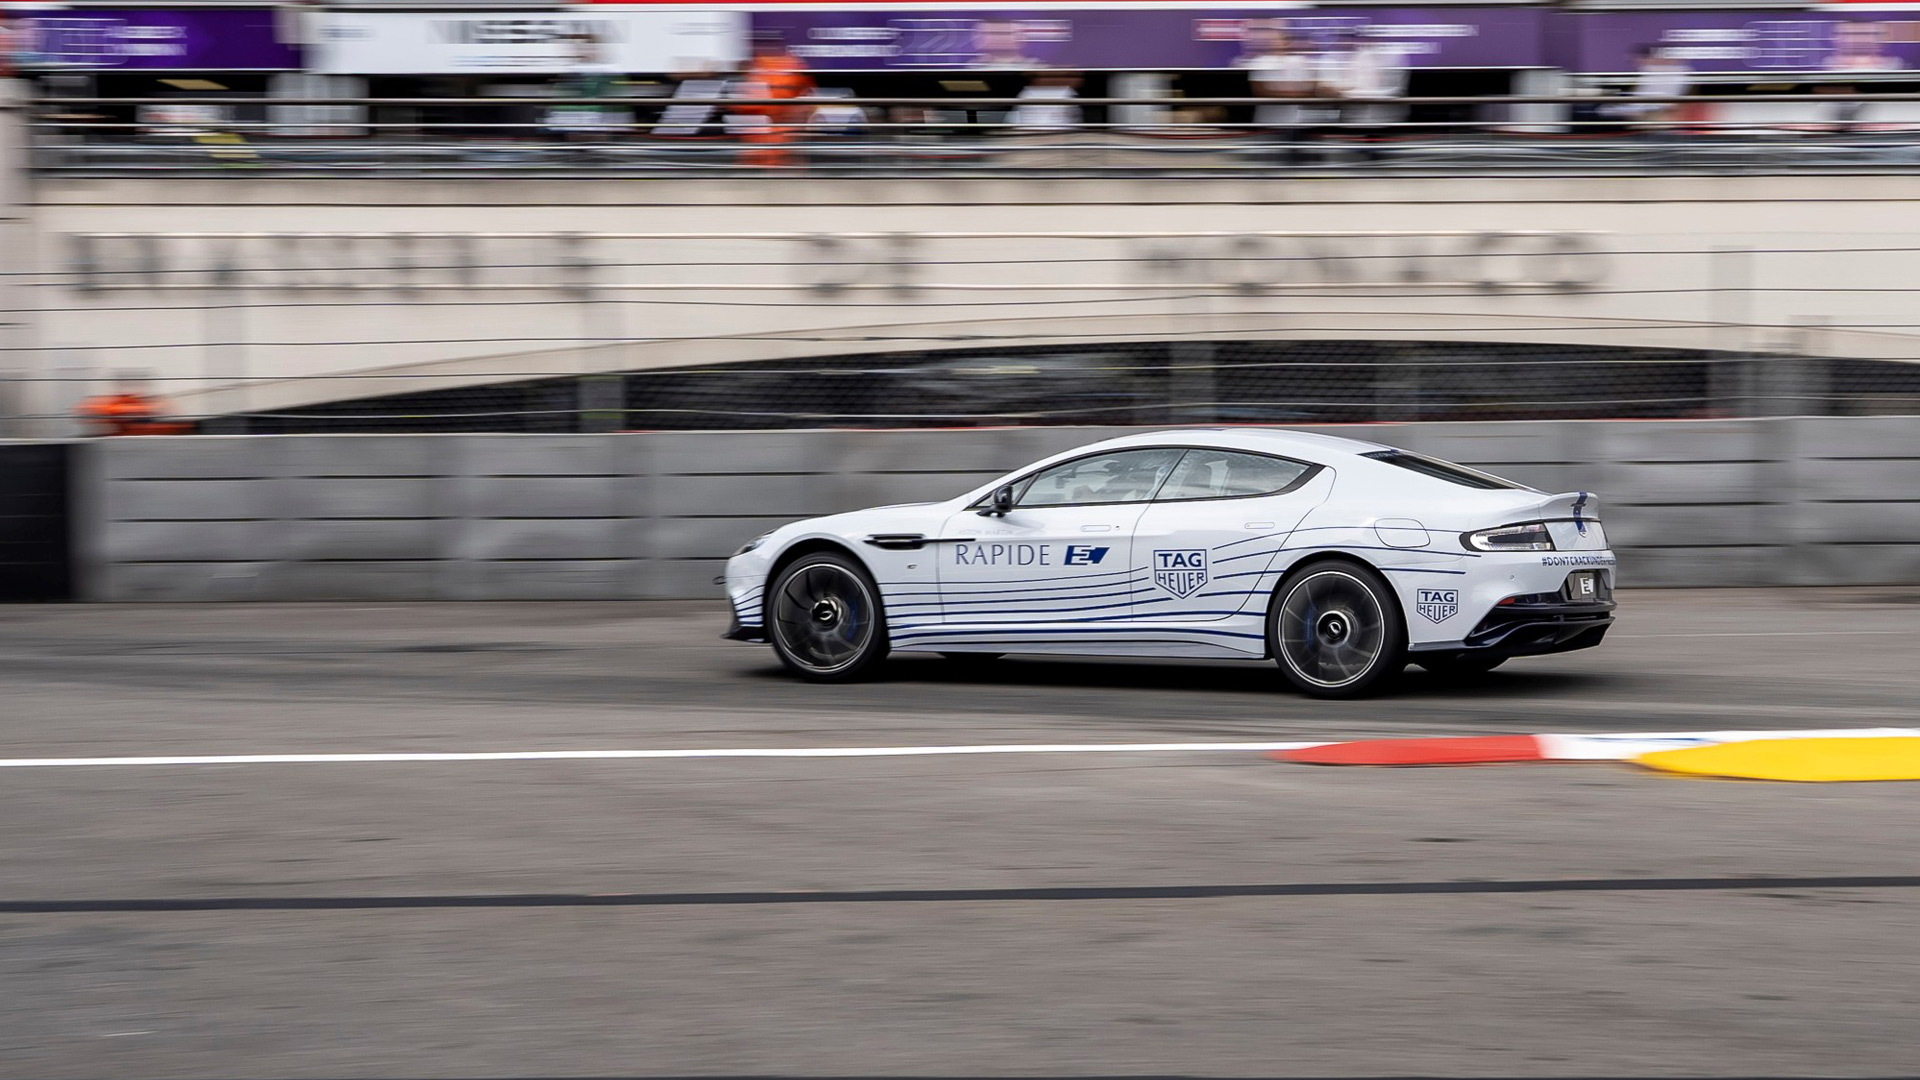 2020 Aston Martin Rapide E at the 2018/2019 Formula E Monaco ePrix